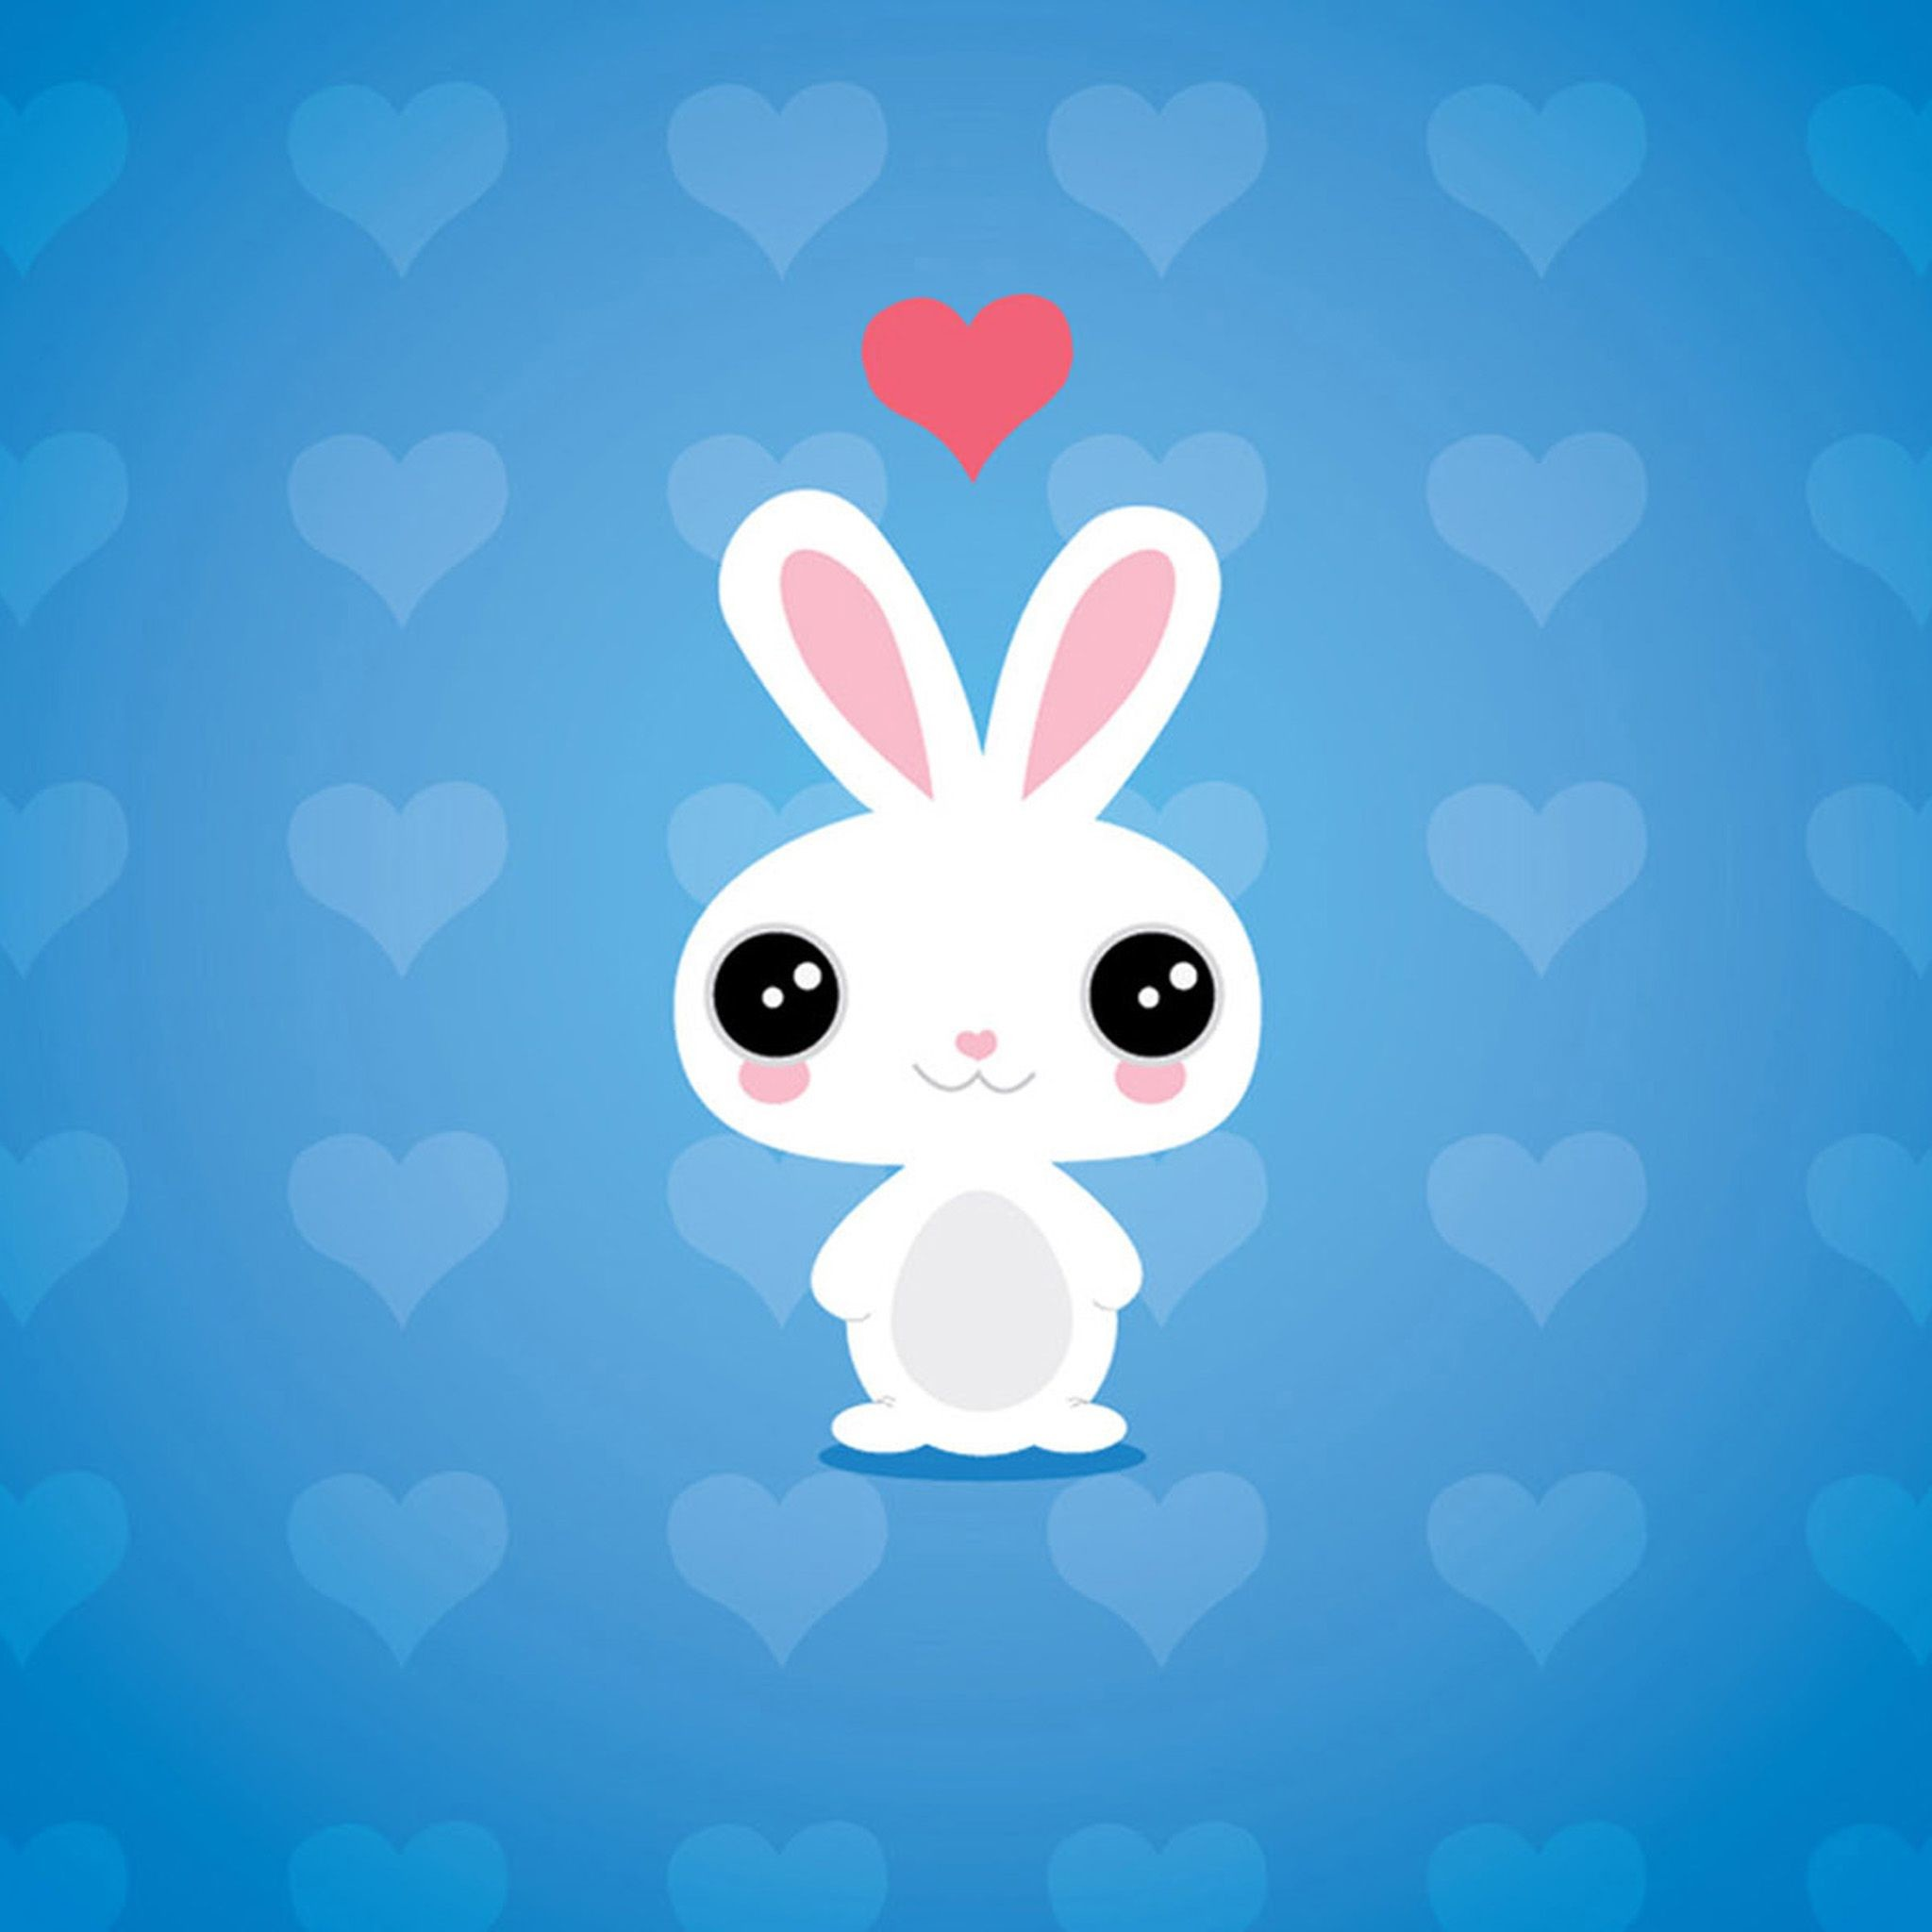 Res: 2048x2048, Wallpapers and Pictures BG Collection: Cool Cute Cartoon Images, Alaine  Rosinski for PC &